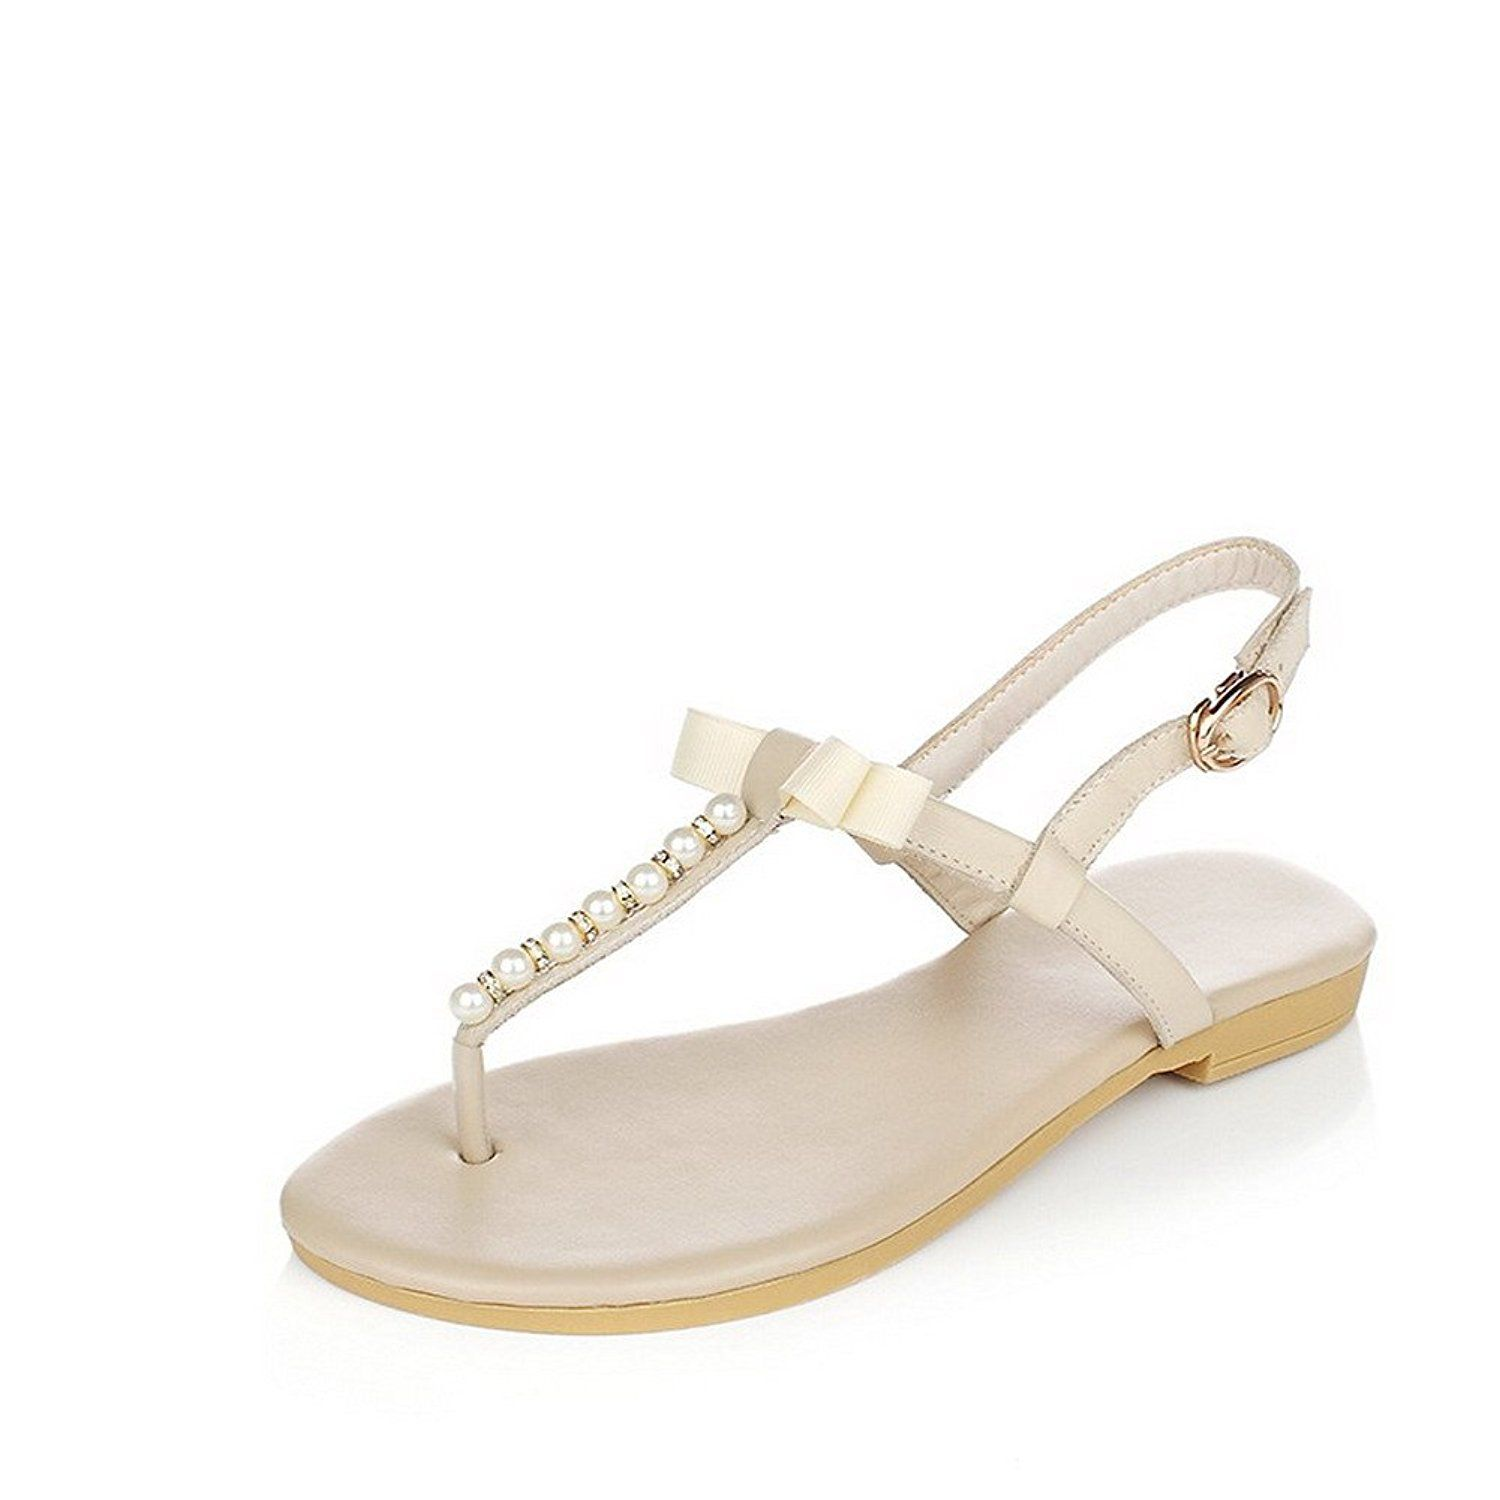 8dacecea4194 WeiPoot Women s No-Heel Soft Material Solid Buckle Split Toe Flip-Flop- Sandals with Bowknot     Check out the image by visiting the link.